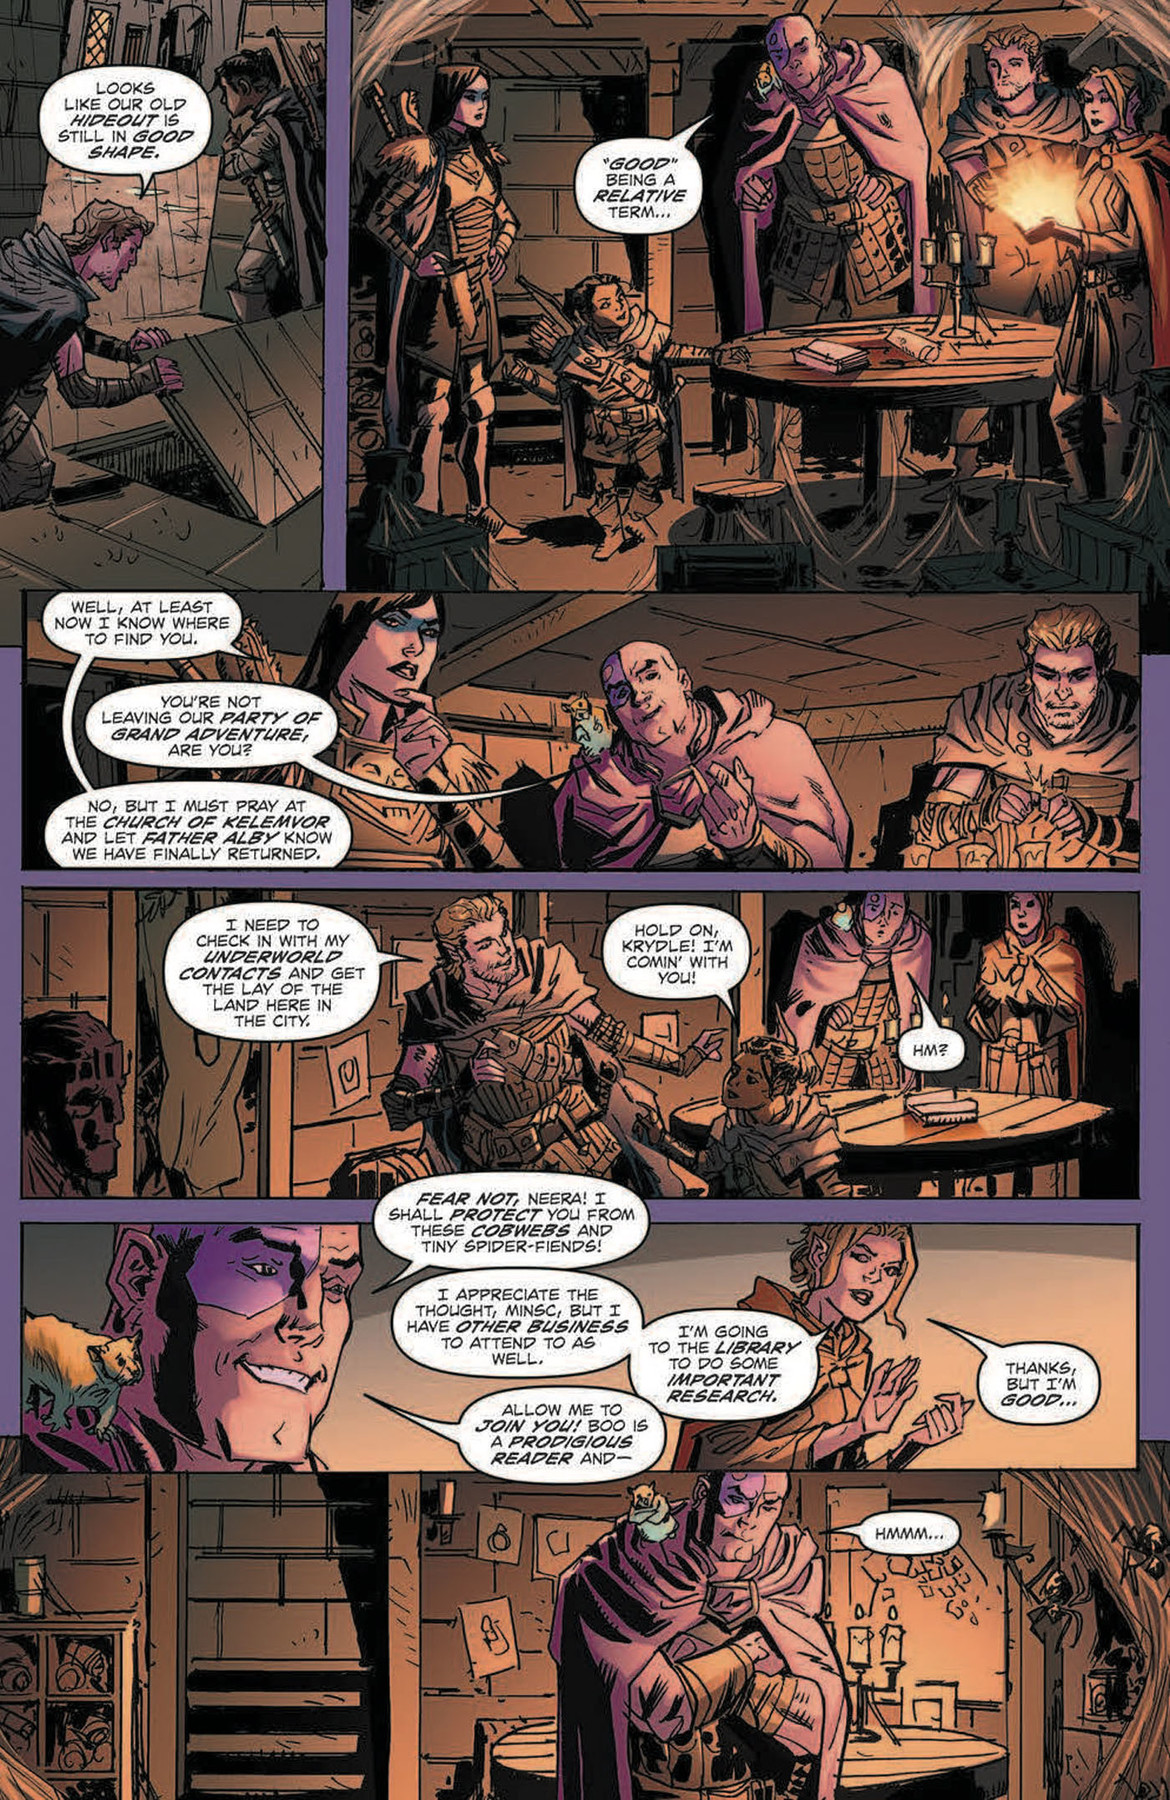 dungeons_and_dragons_evil_at_baldurs_gate_page_4.jpg